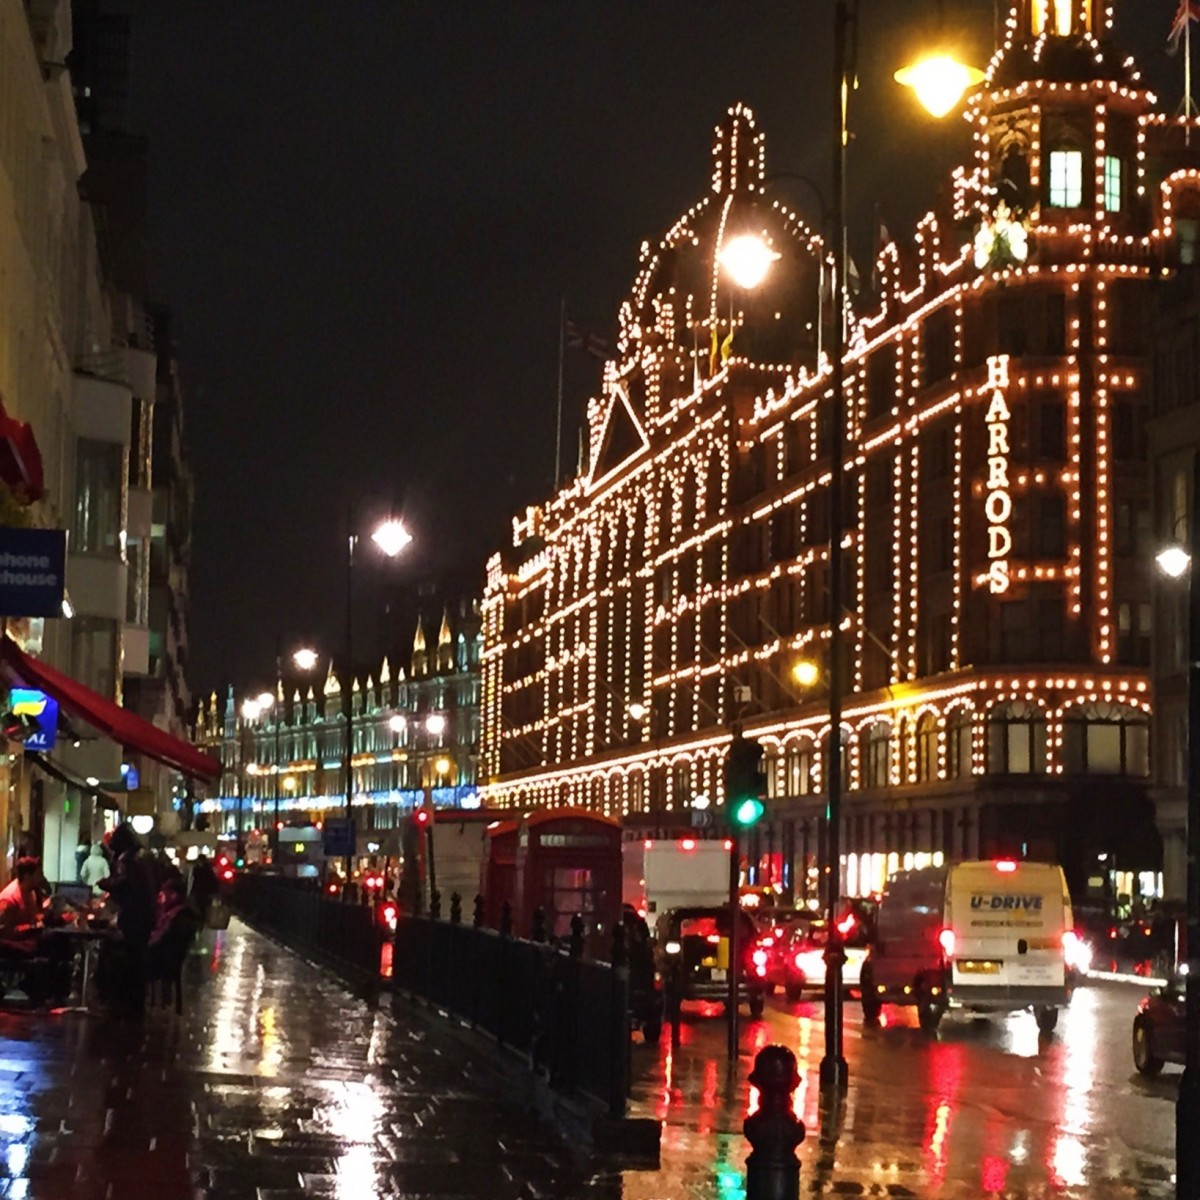 Harrods Christmas 2015, London - Copyright: www.globalmousetravels.com